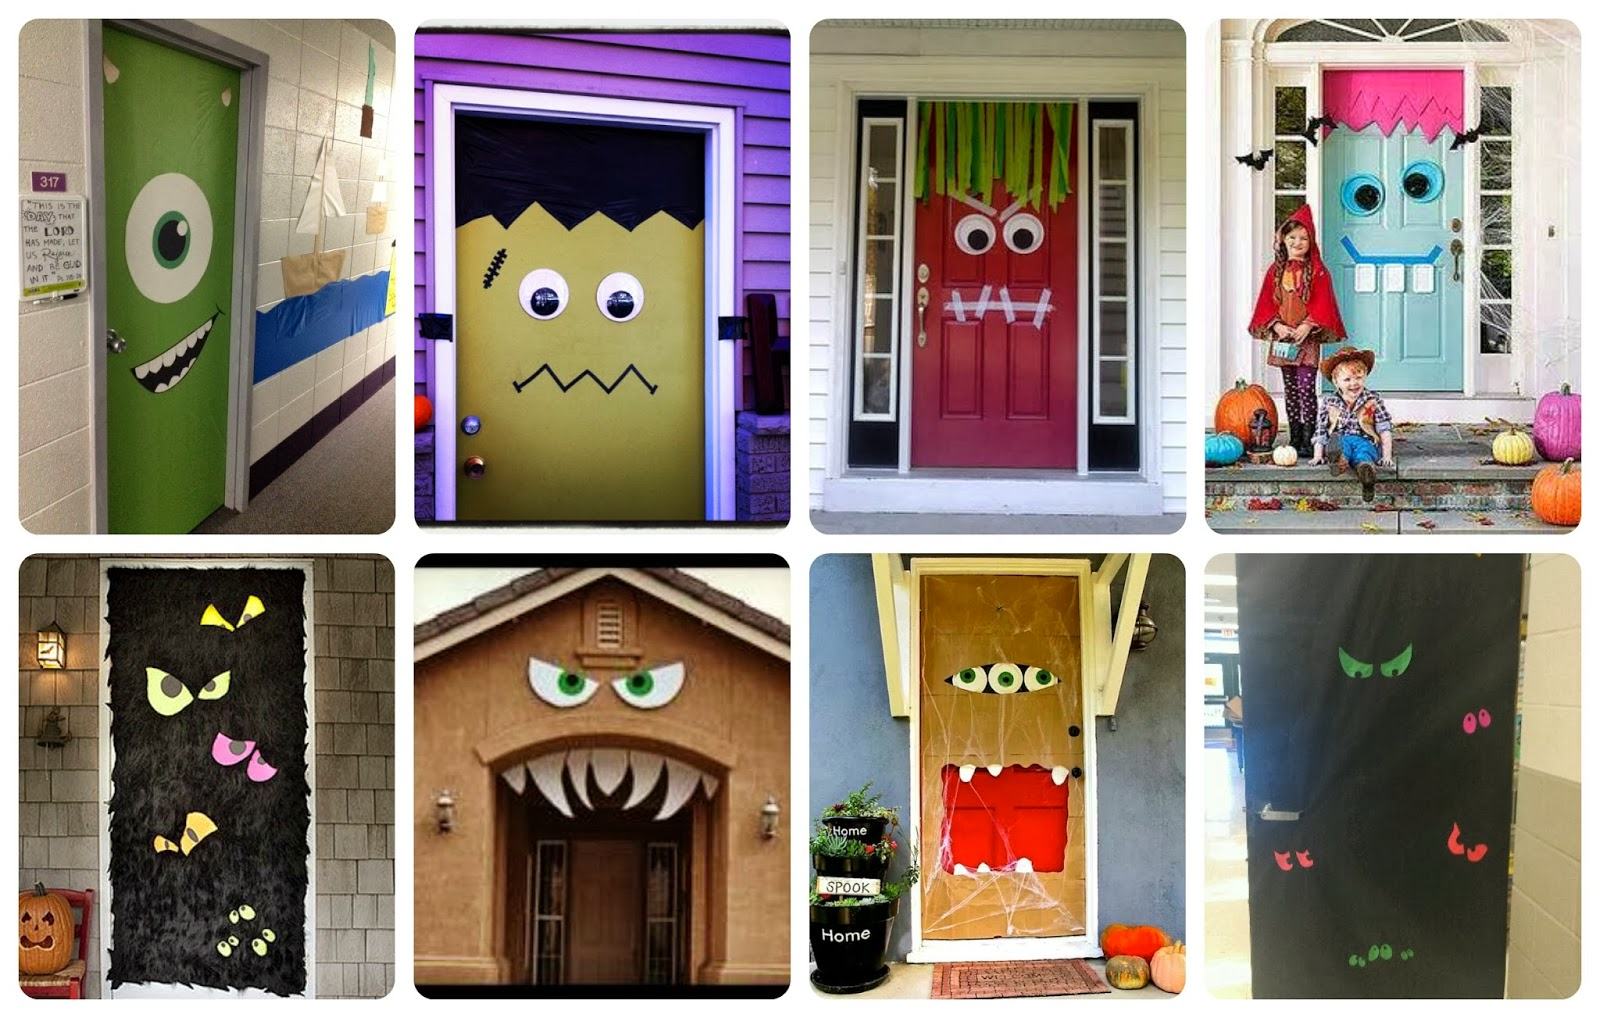 Recursos ideas para decorar en halloween lluvia de ideas for Adornos para puertas